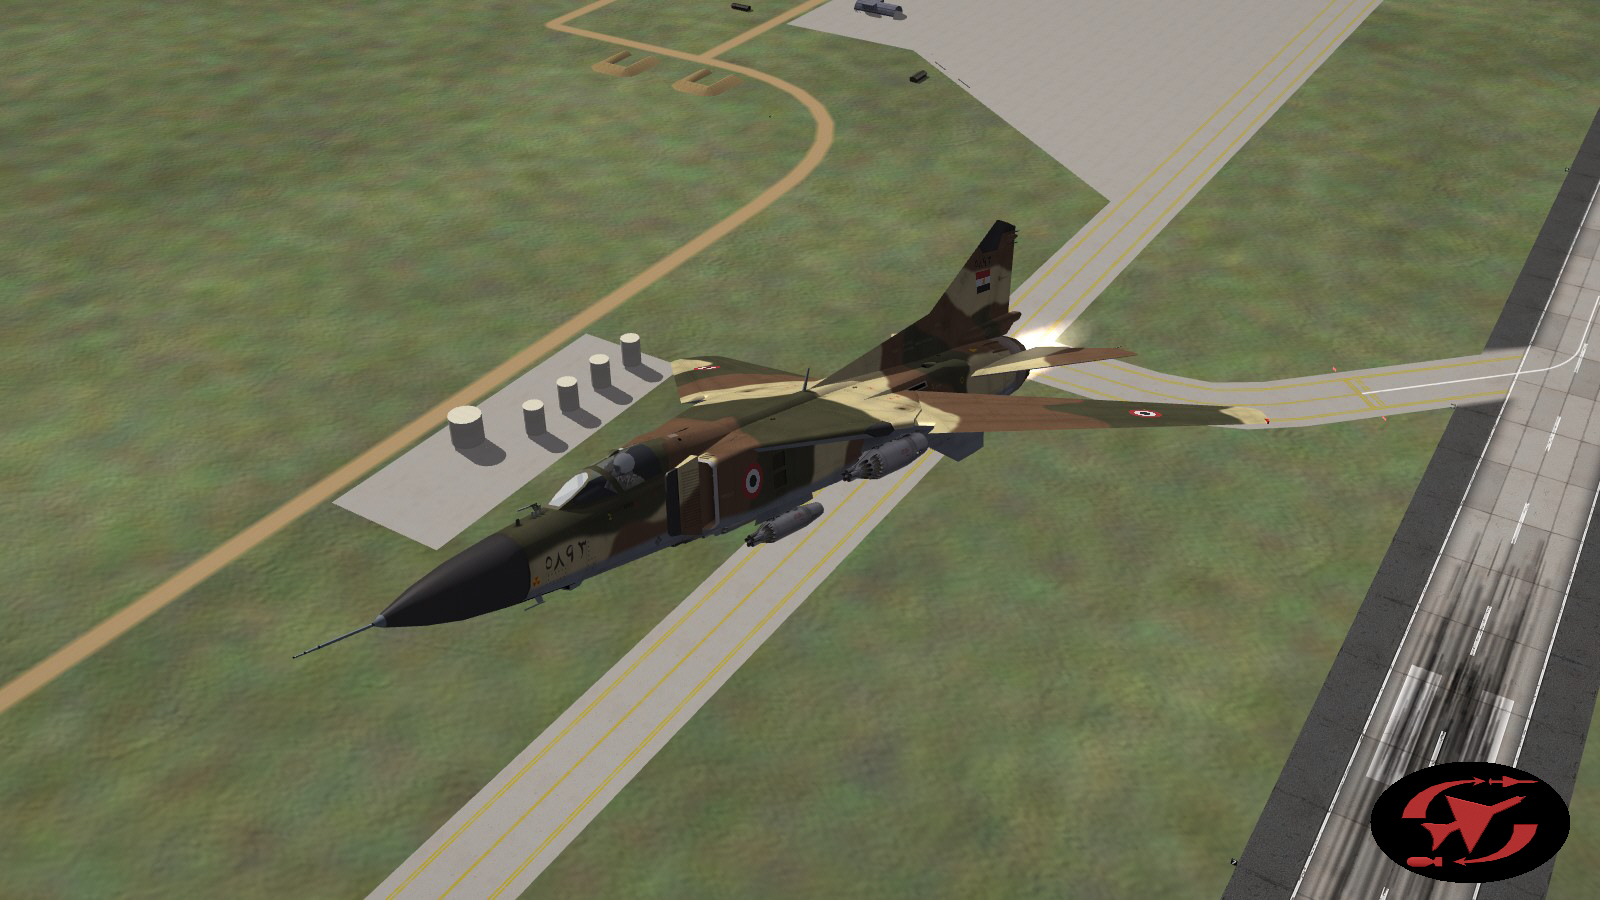 MiG-21MF MiG-23MF - RSSW Compatible Test Planes